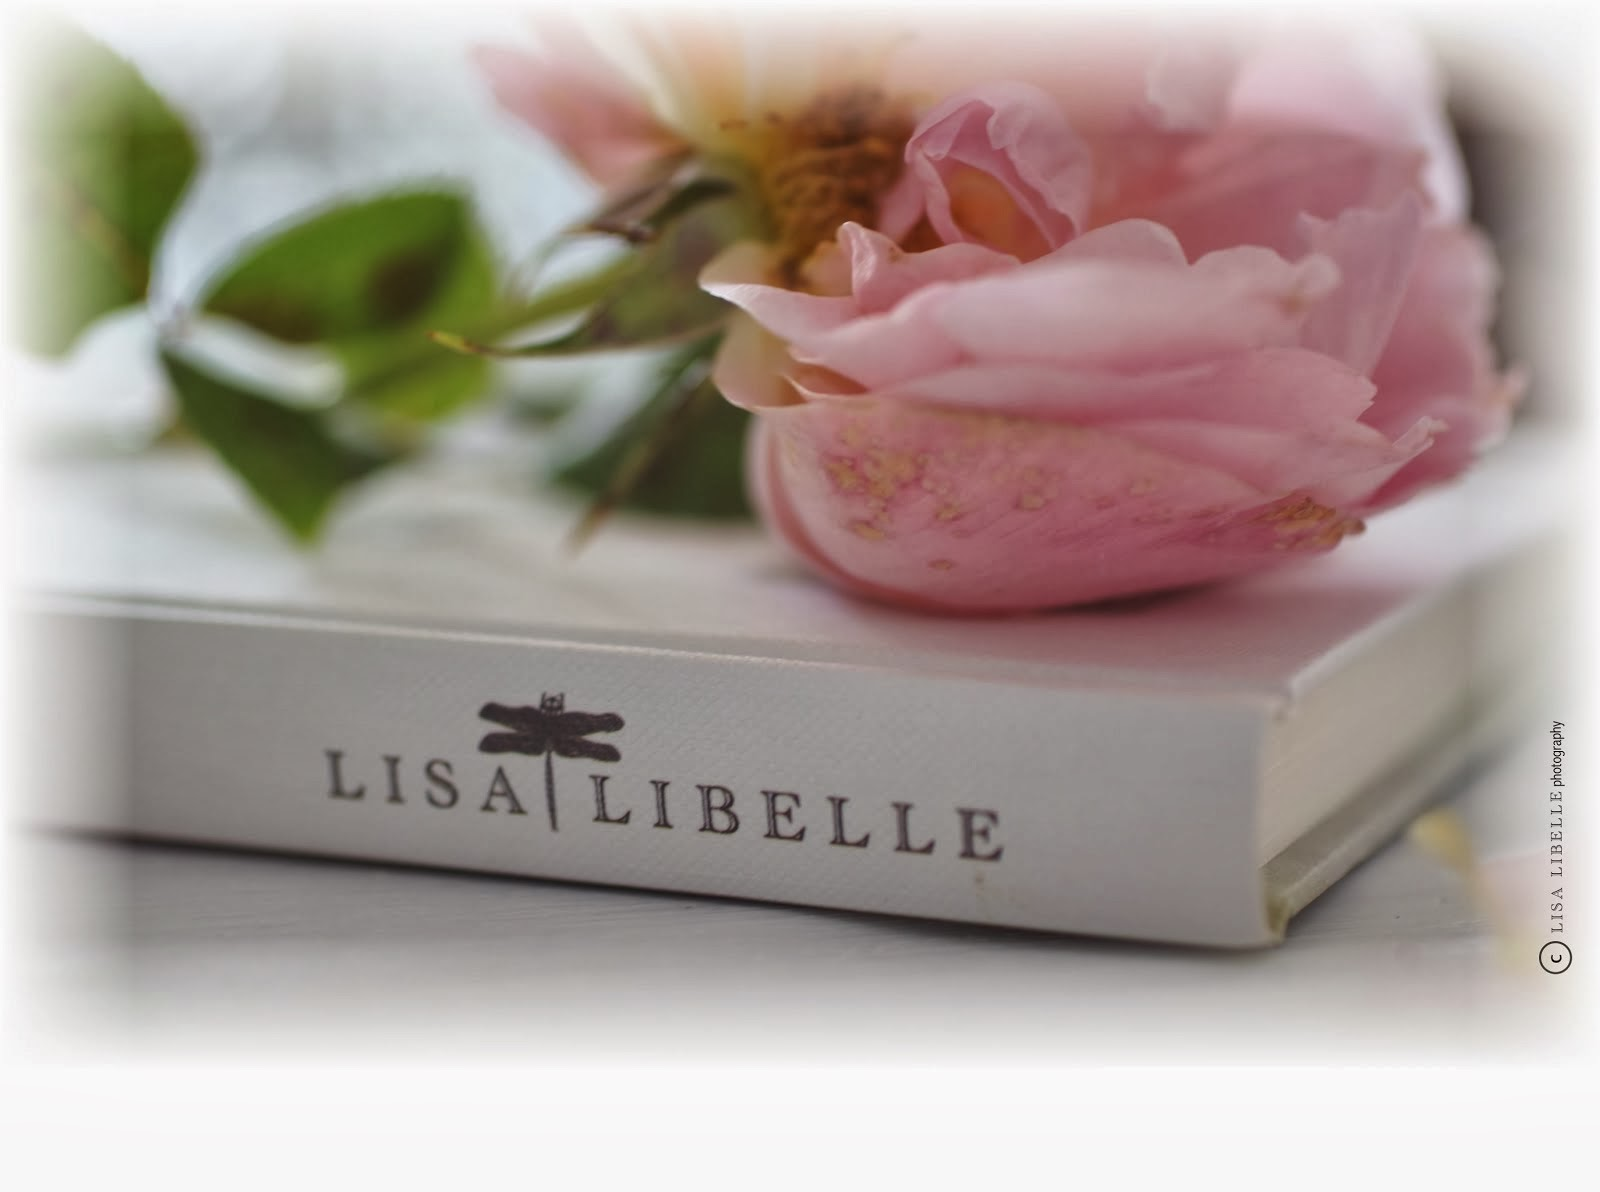 my Website LISA LIBELLE